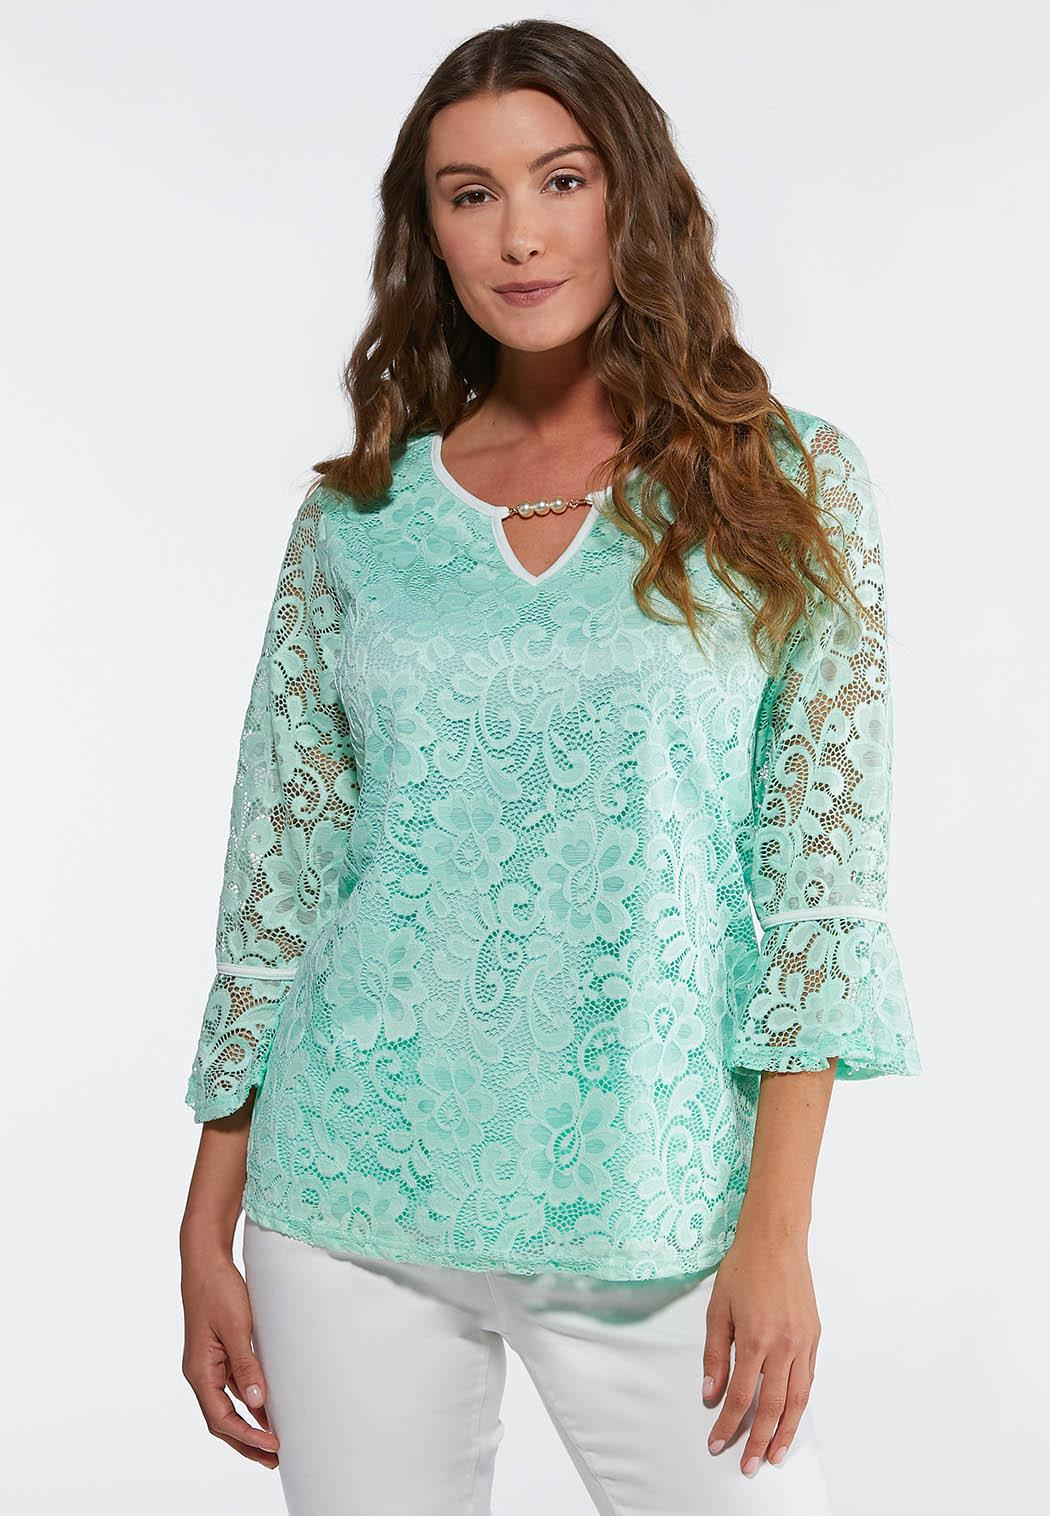 ea1623f5f42 Pearl Embellished Lace Top alternate view · Pearl Embellished Lace Top